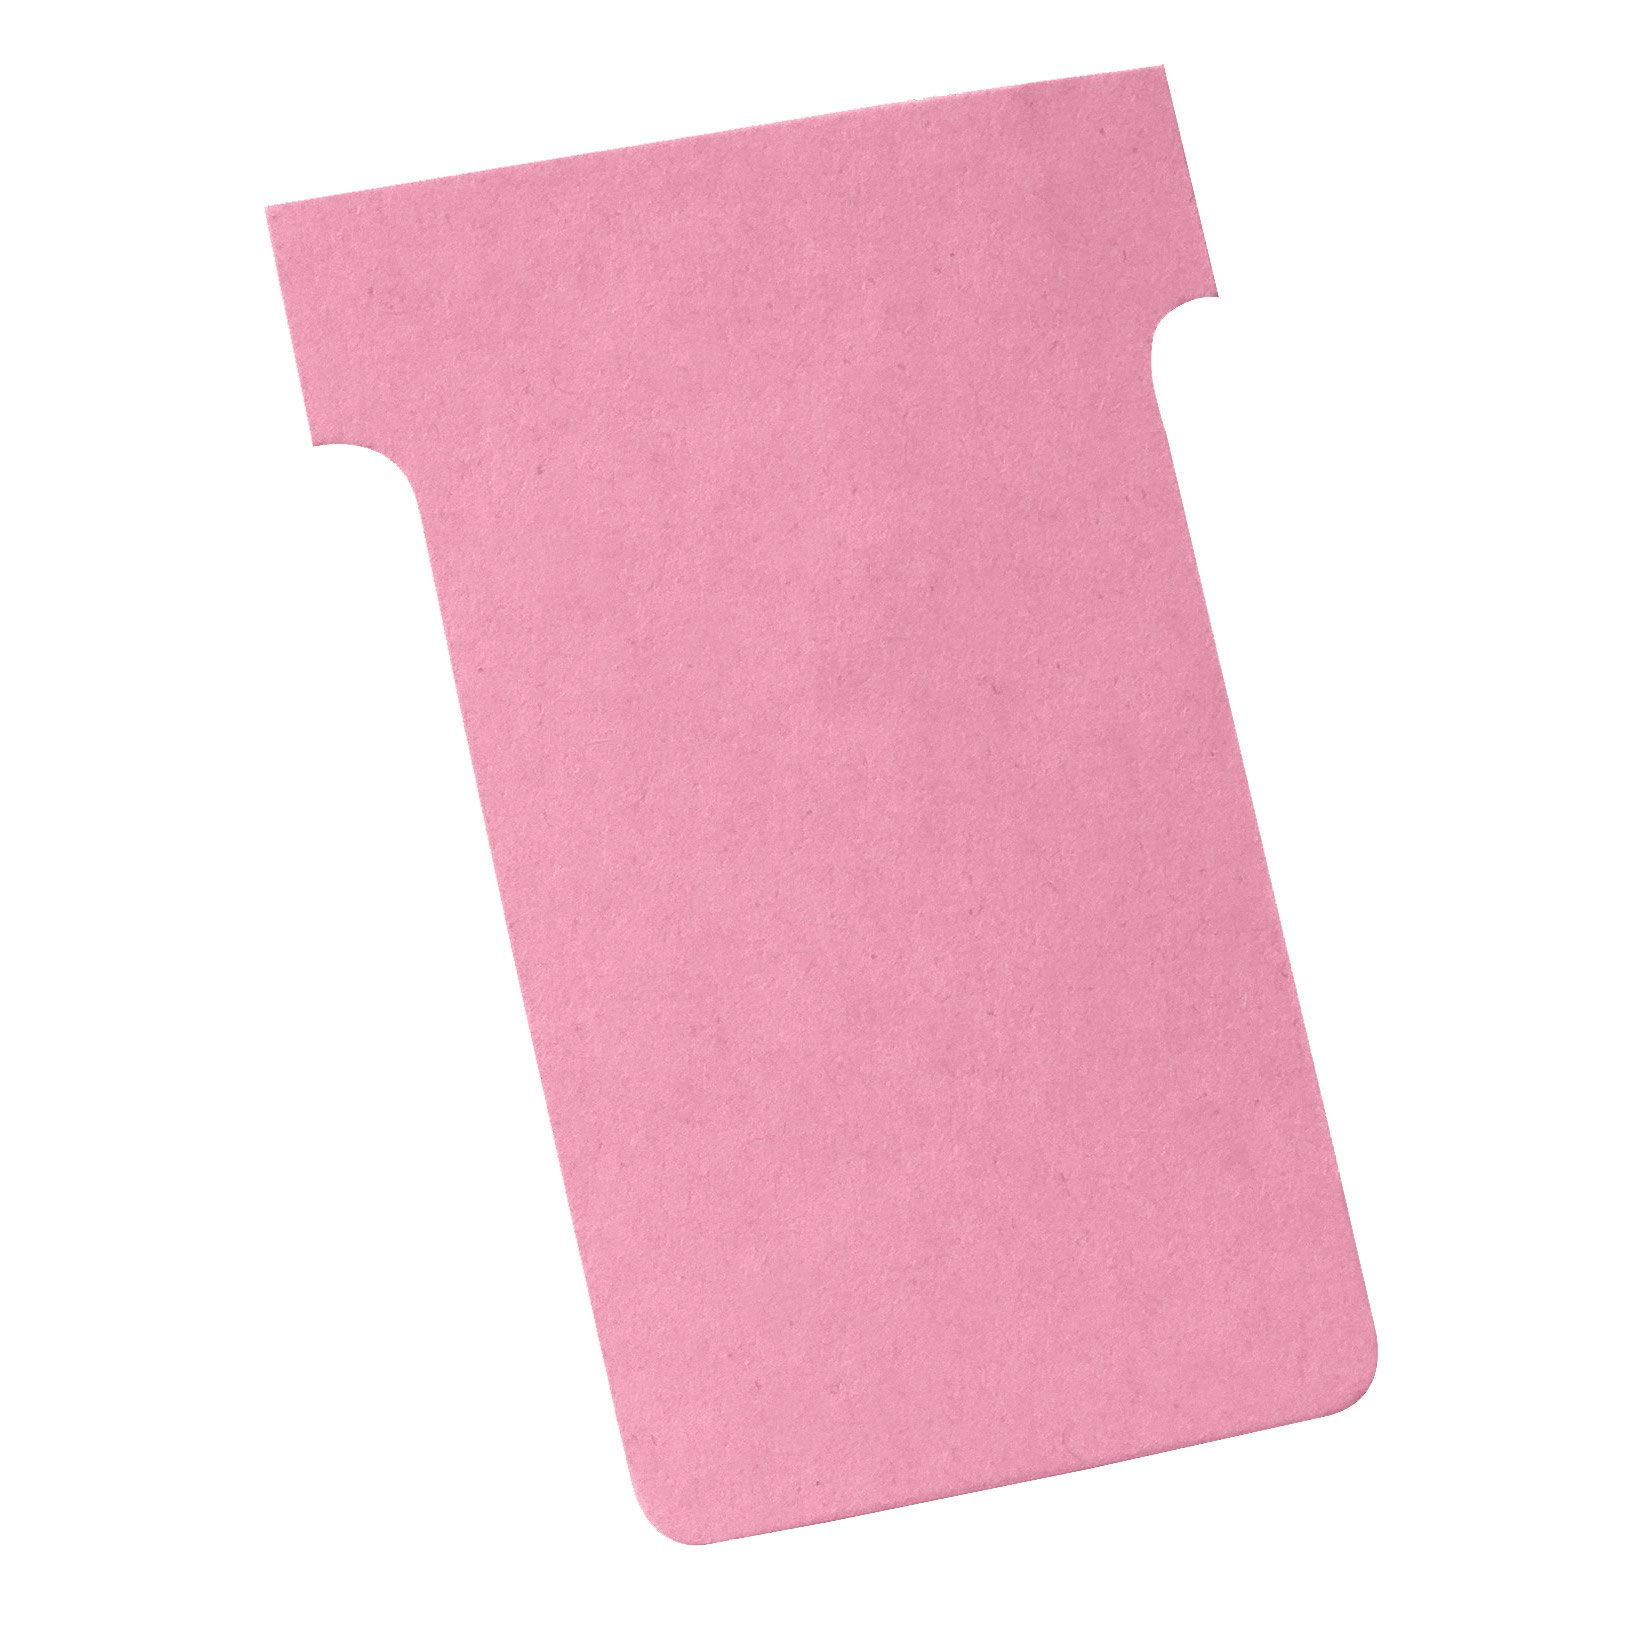 Nobo T-Cards A80 Size 3 Pink (100) 2003008